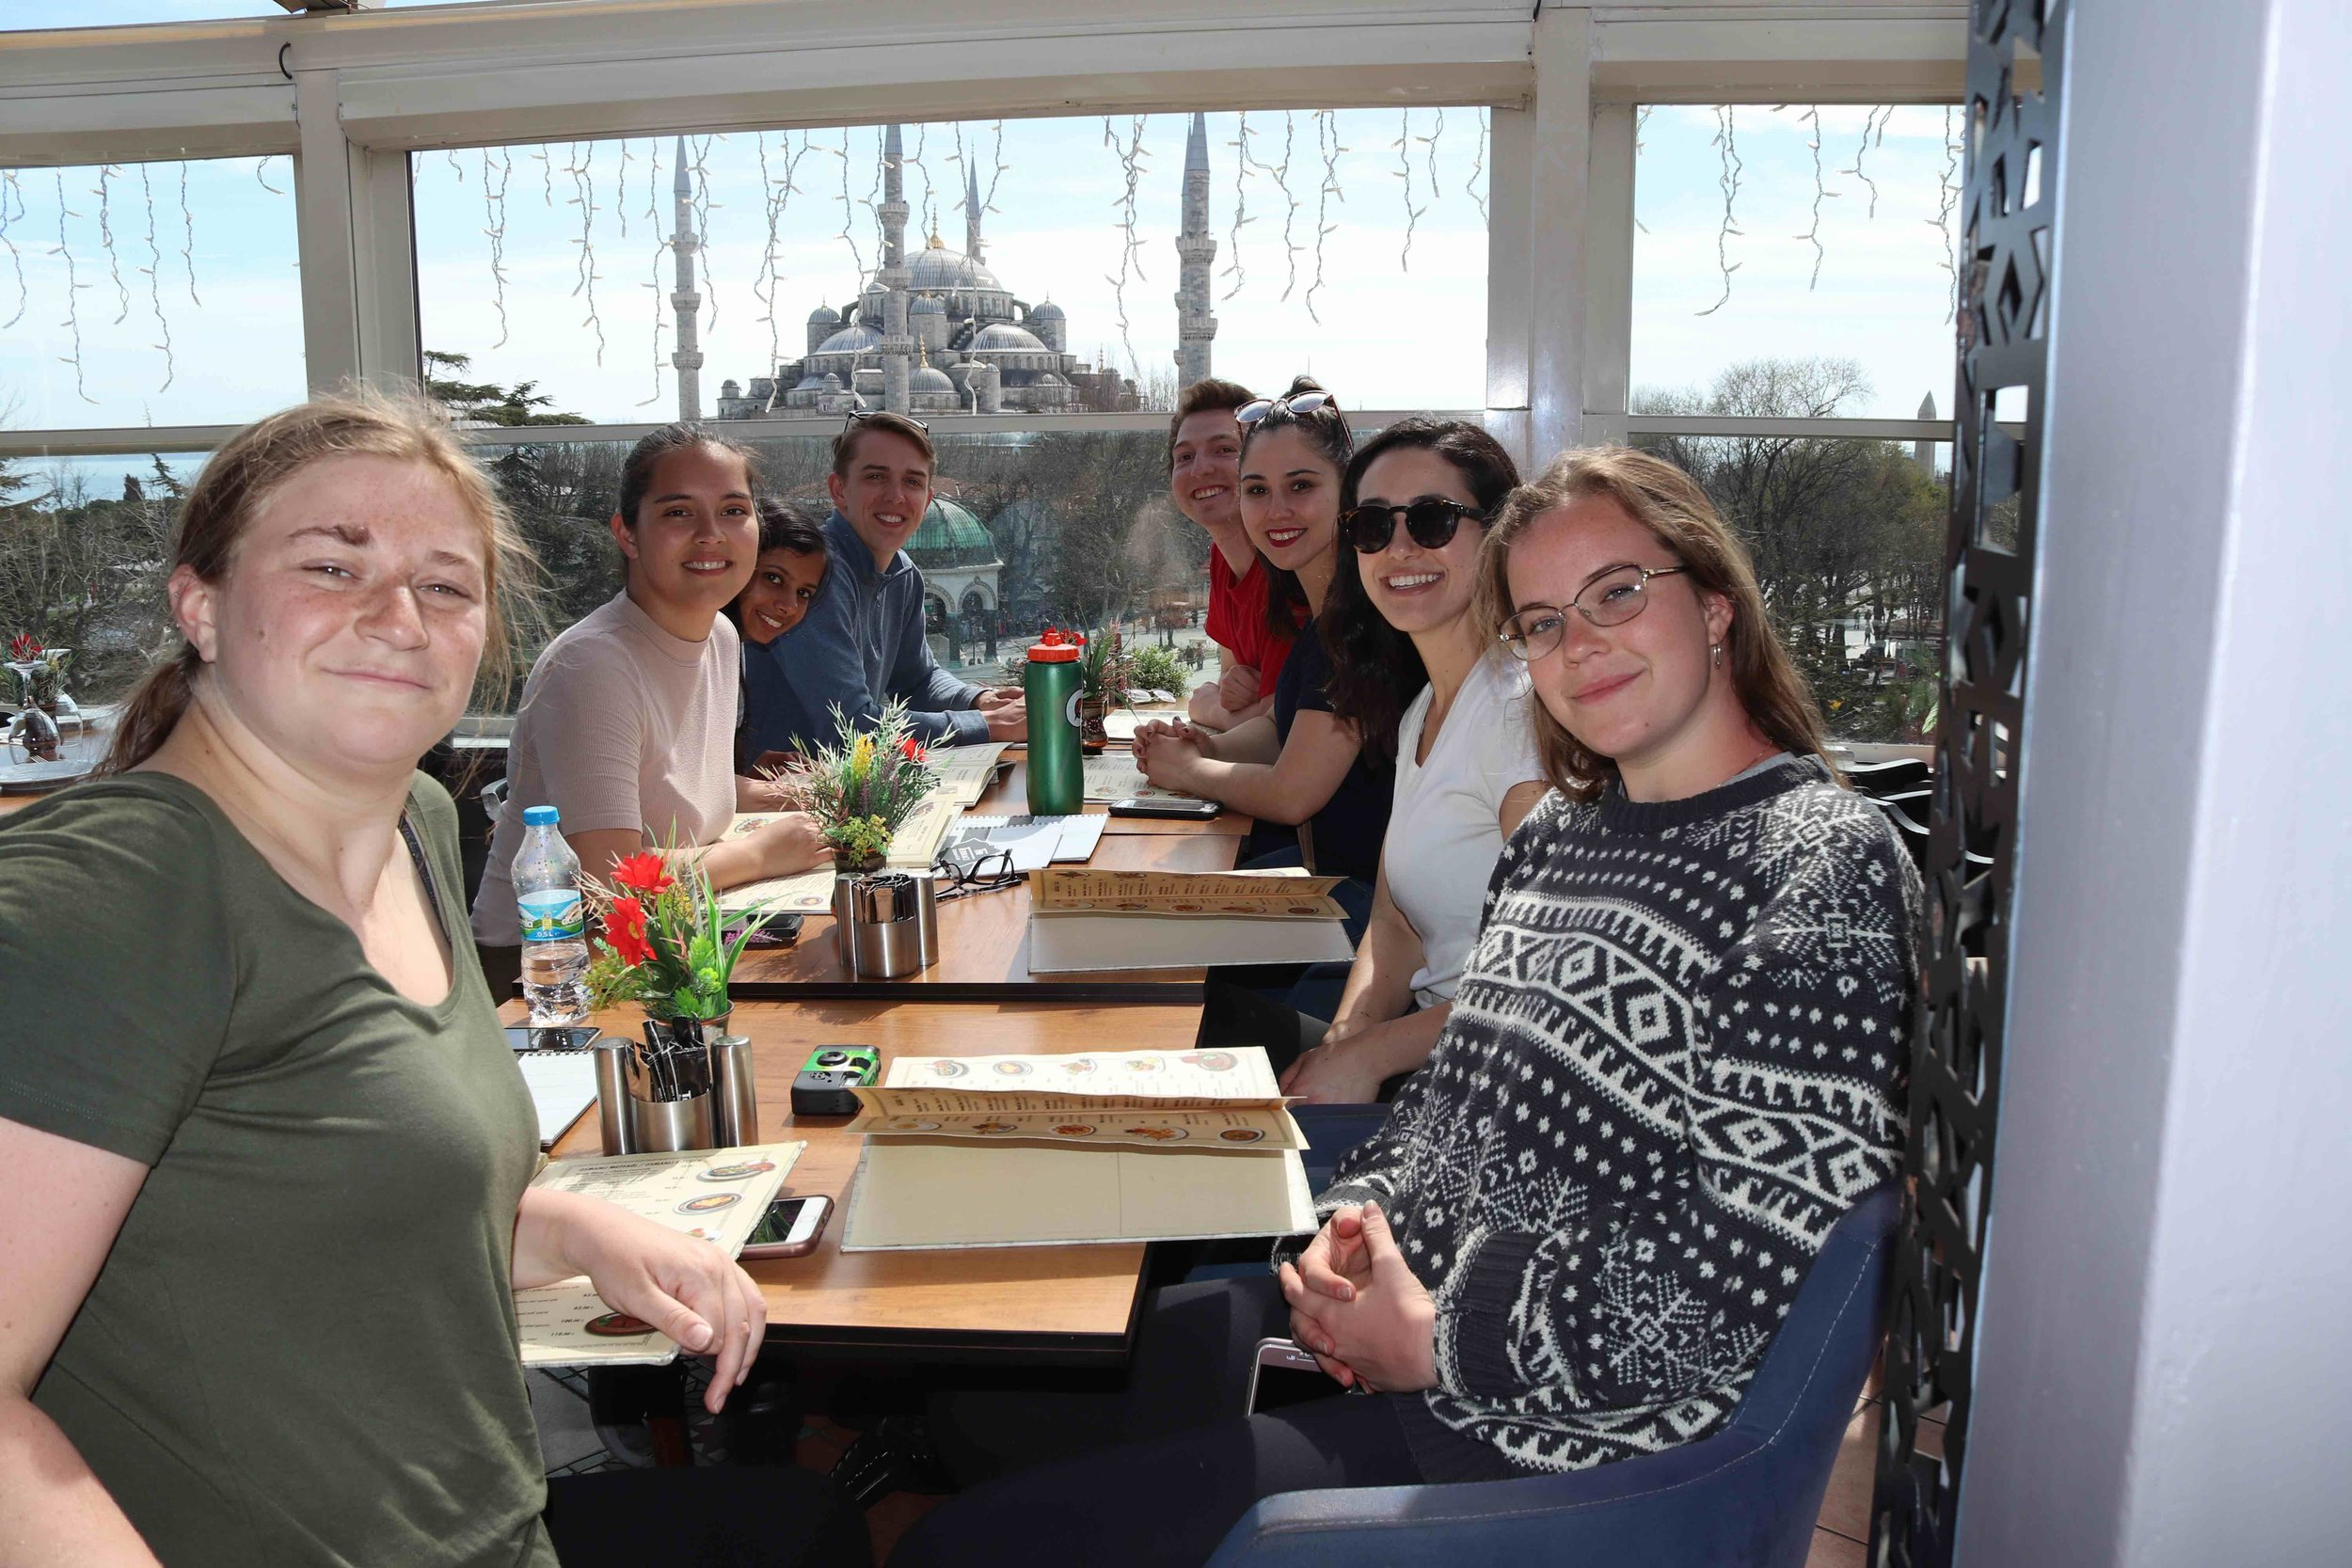 Newhouse students enjoy lunch at The Terrace Restaurant, overlooking the Blue Mosque in Istanbul.